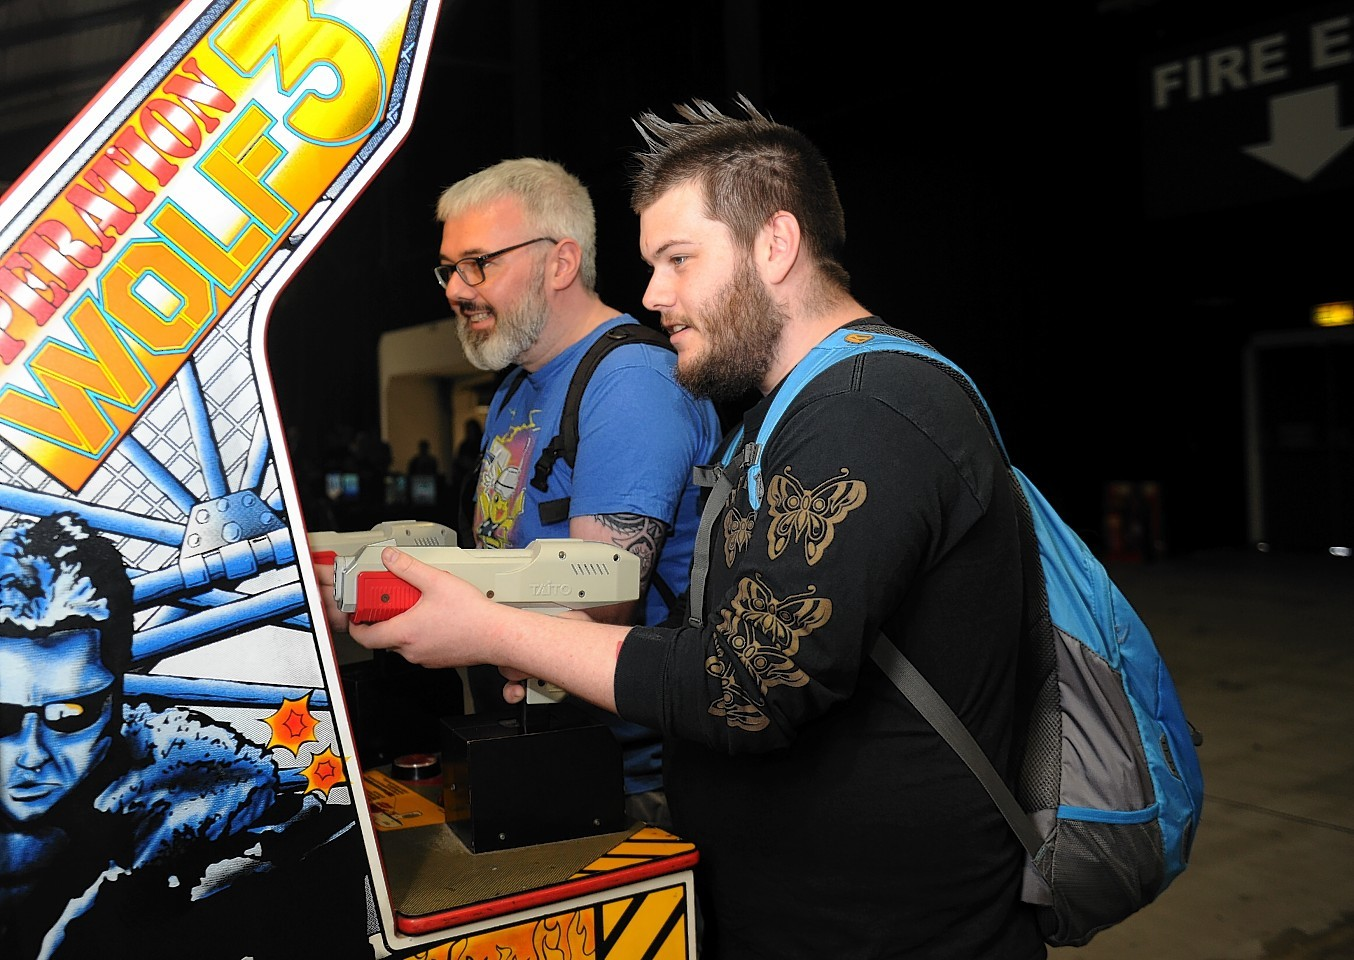 Thousands of people visited Aberdeen's first gaming convention last weekend.